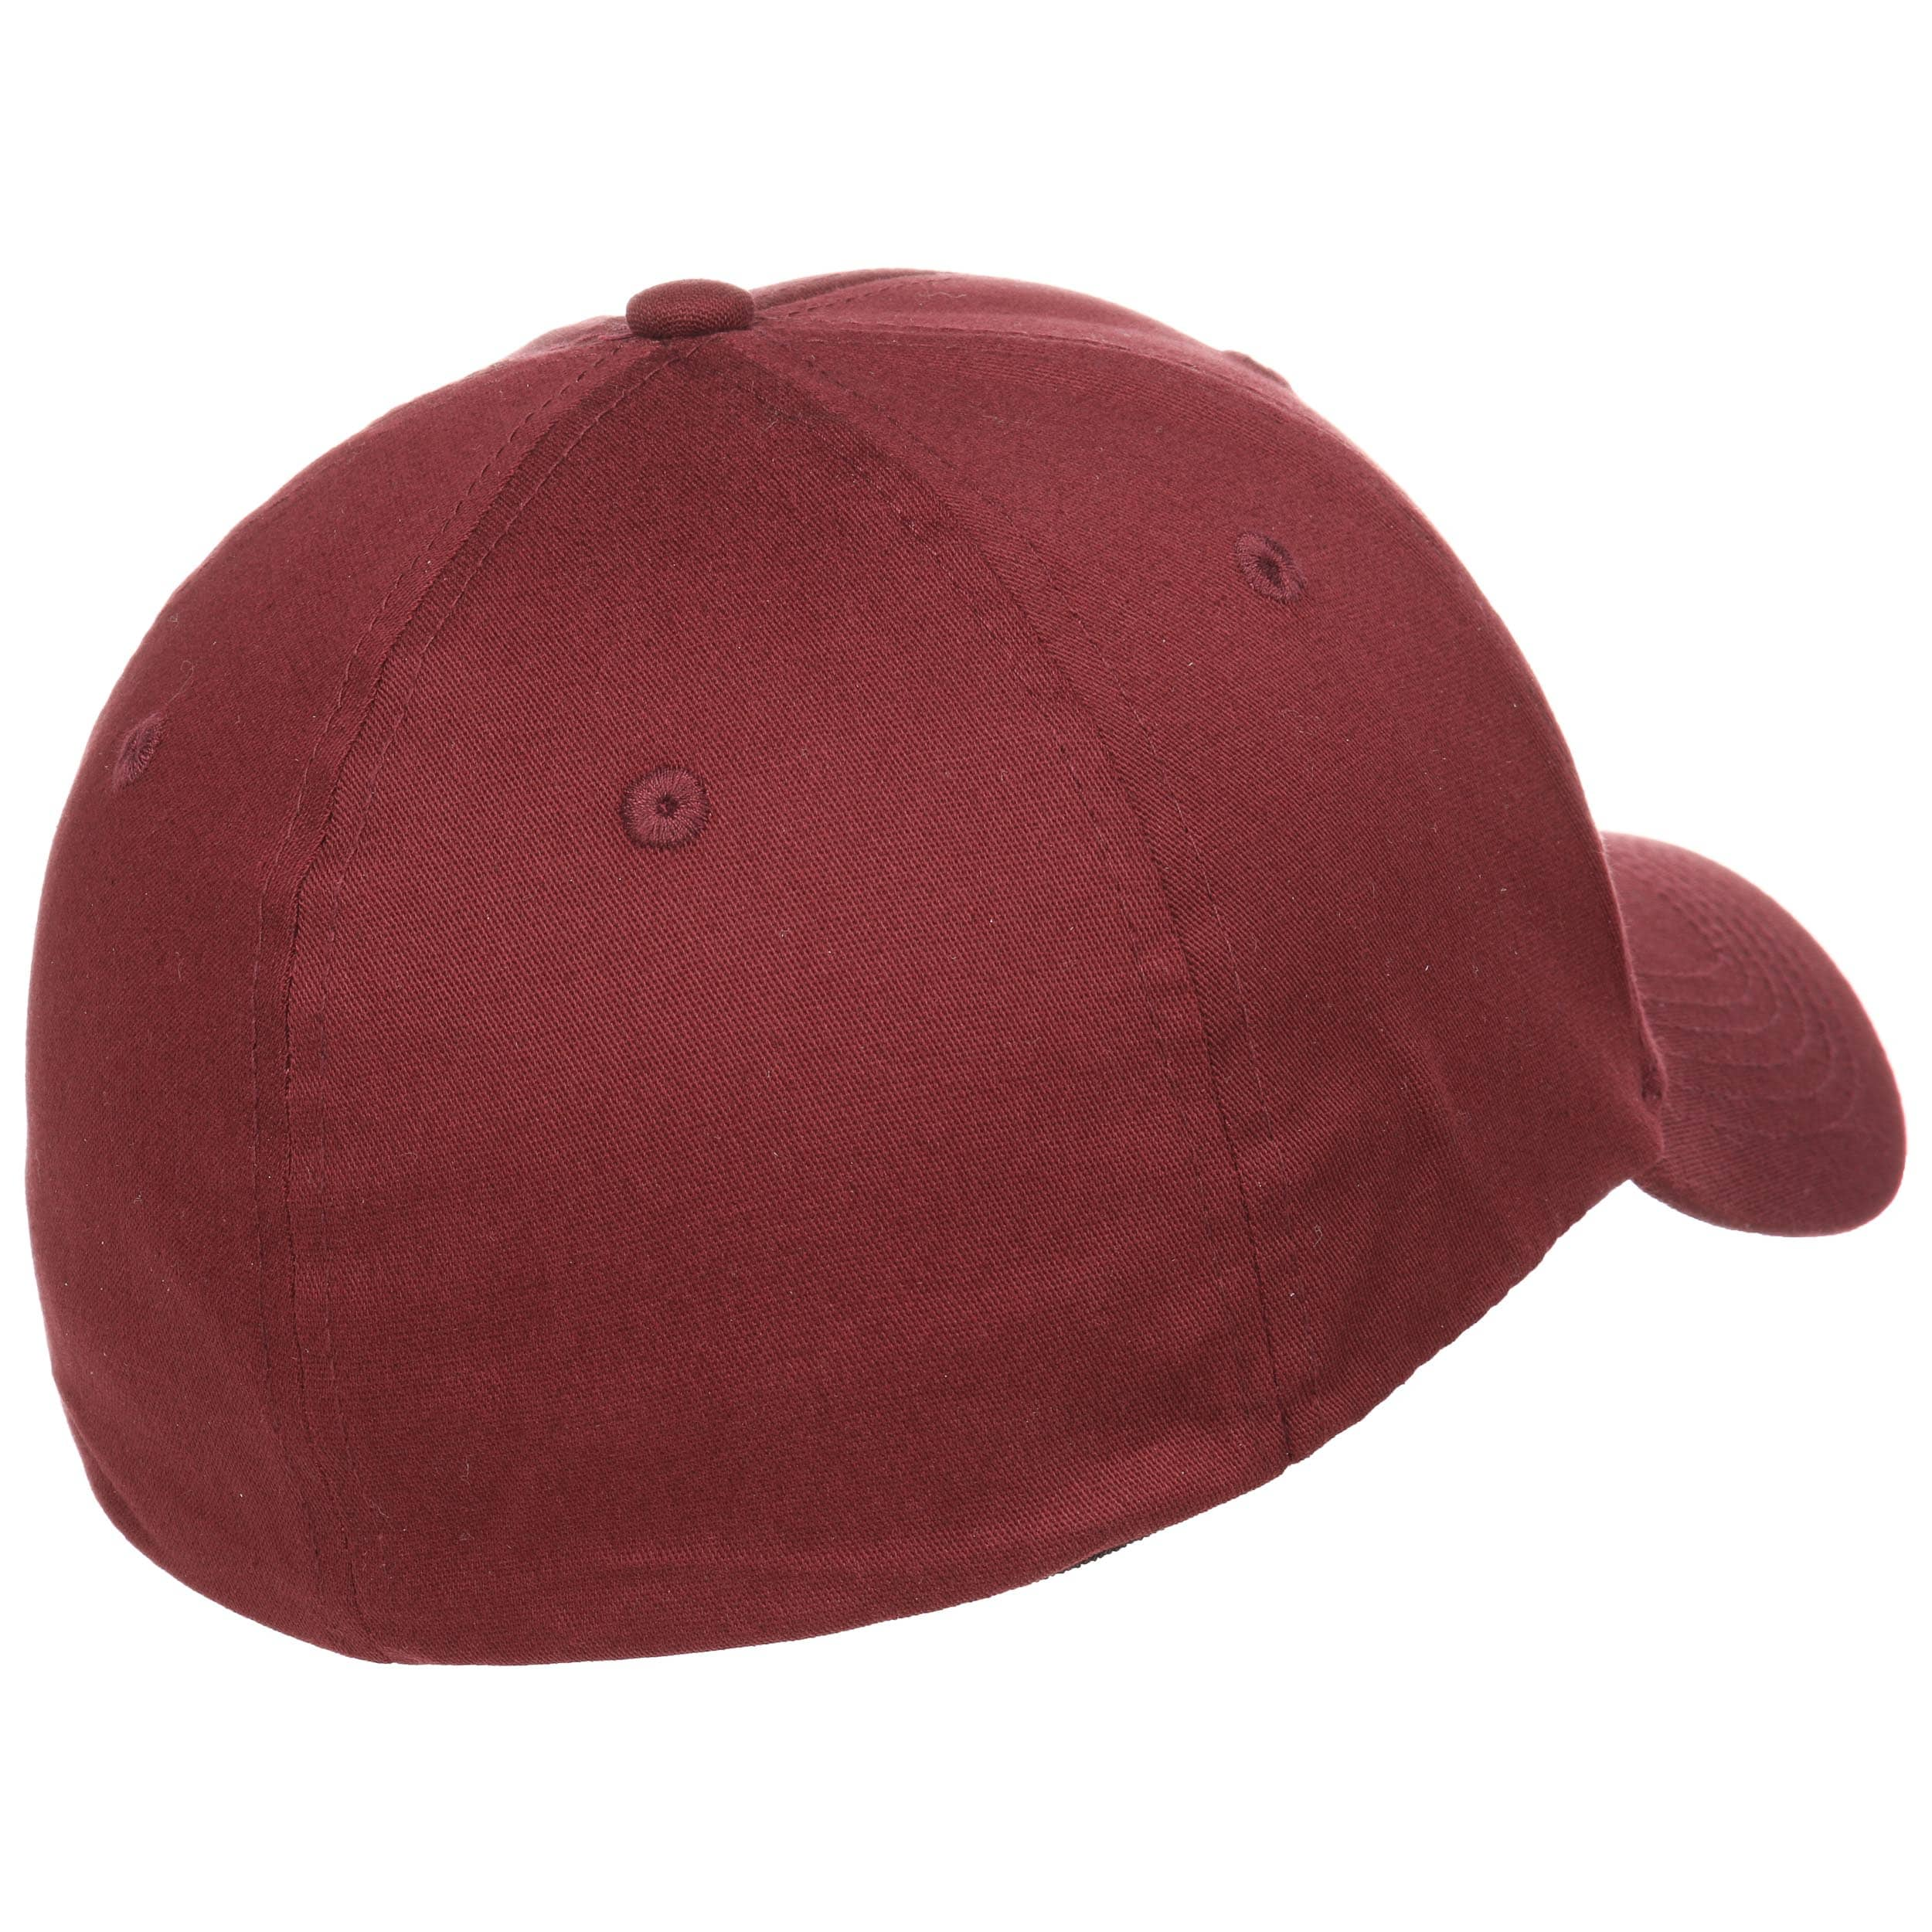 27a0be67738 ... Morrilton Fitted Cap by Dickies - bordeaux 3 ...